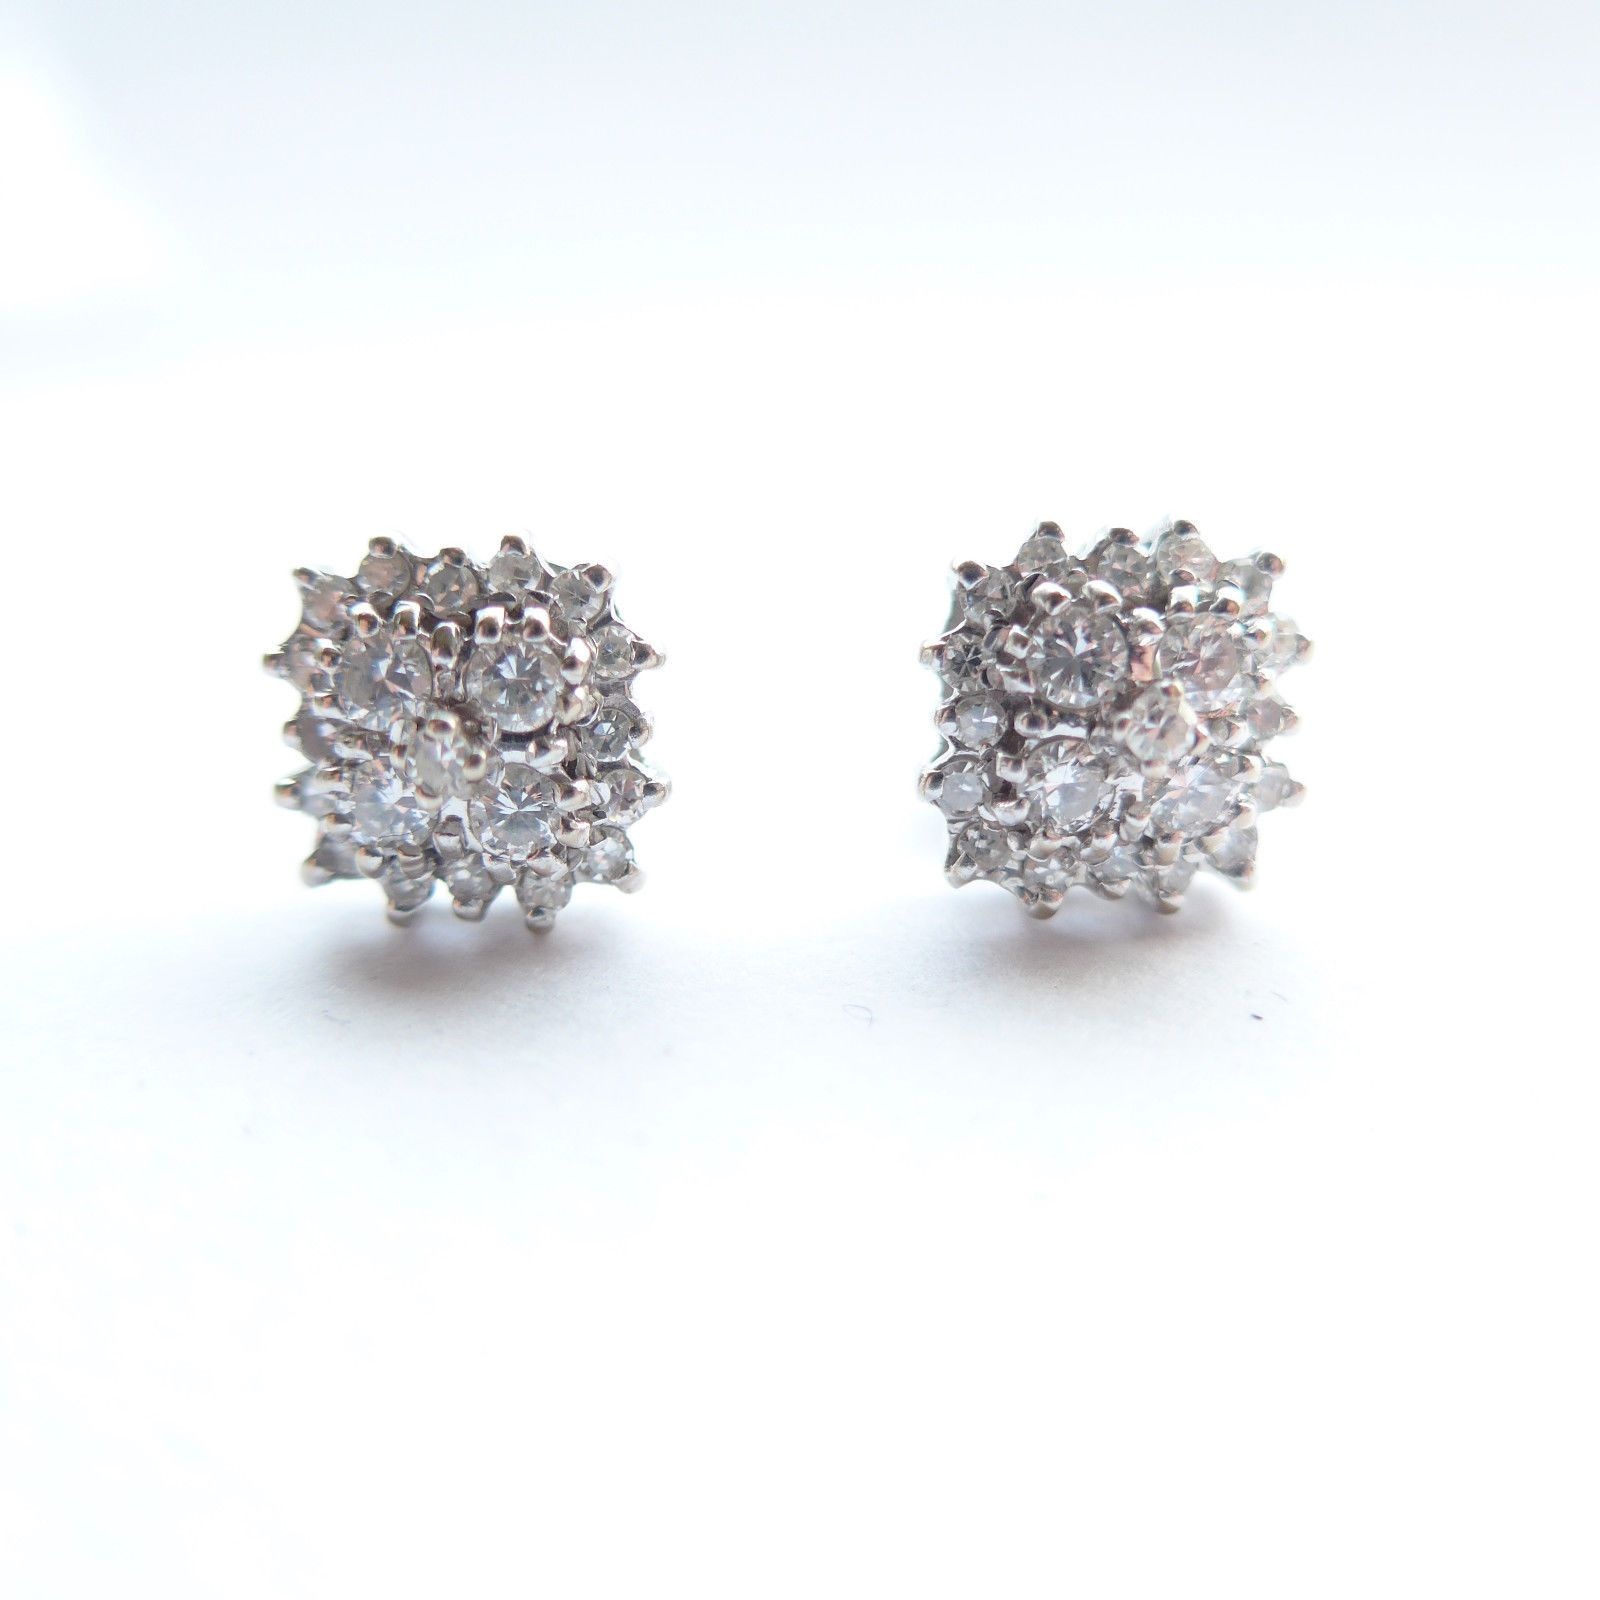 237cd0574 SOLD 18ct White Gold & Diamond Square Cluster Earrings - Approx 1 CT  Diamond Weight